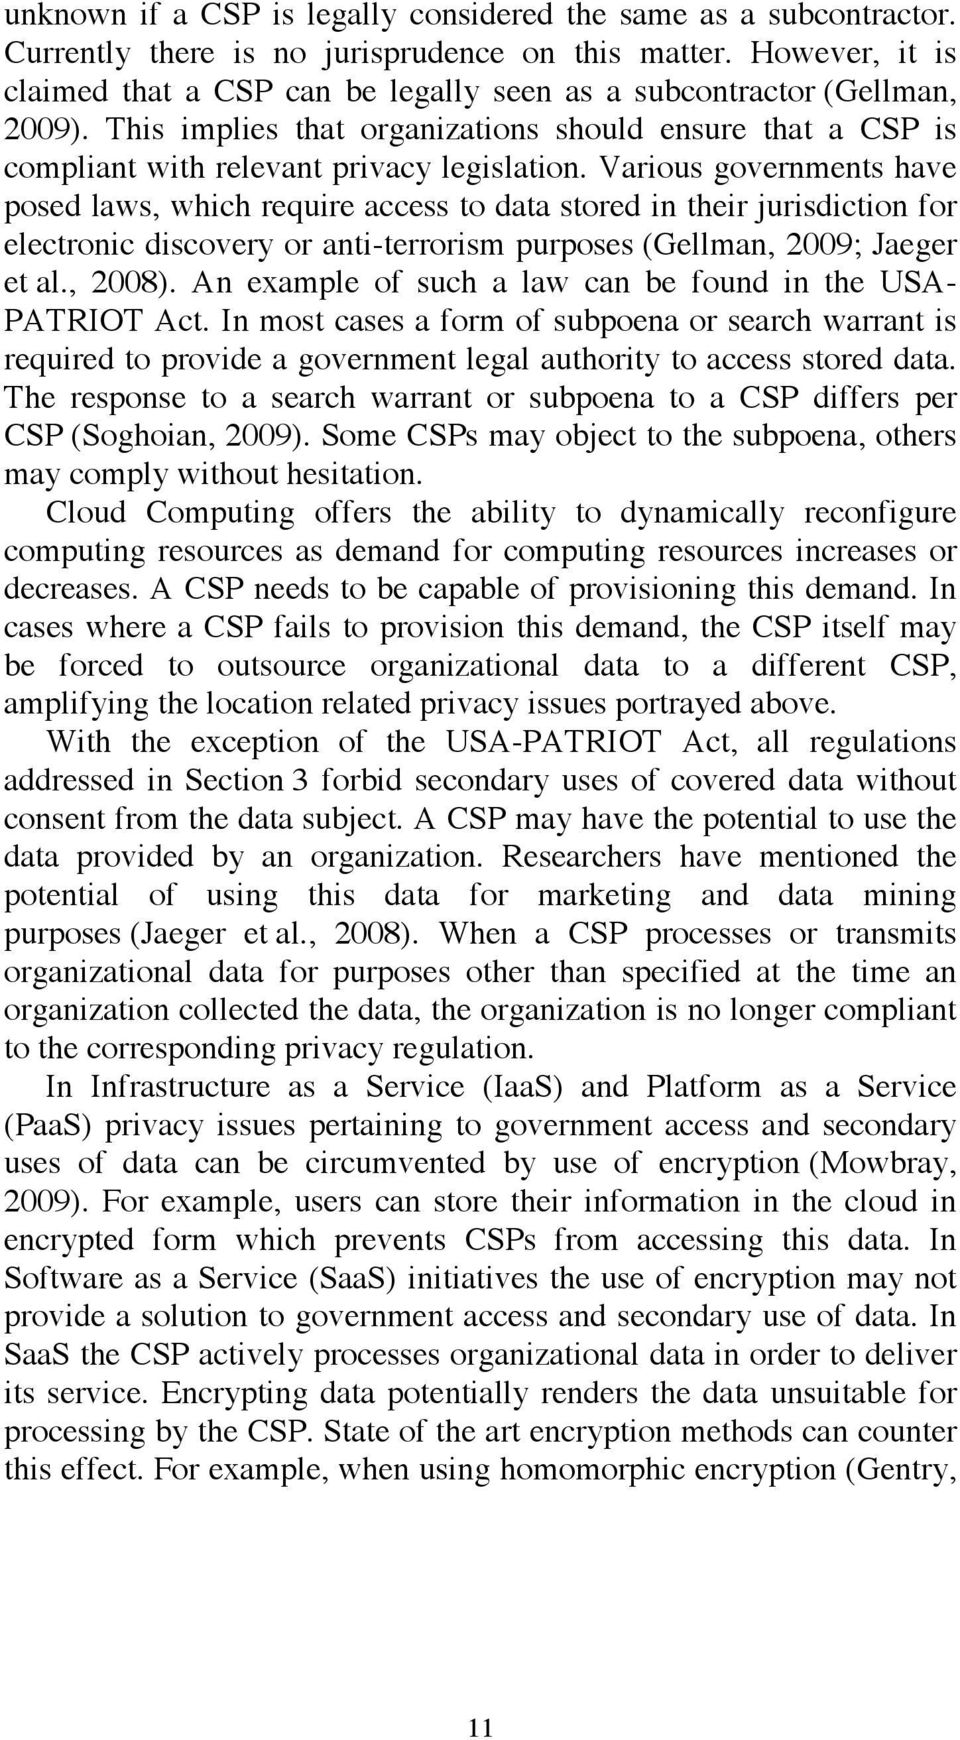 Various governments have posed laws, which require access to data stored in their jurisdiction for electronic discovery or anti-terrorism purposes (Gellman, 2009; Jaeger et al., 2008).